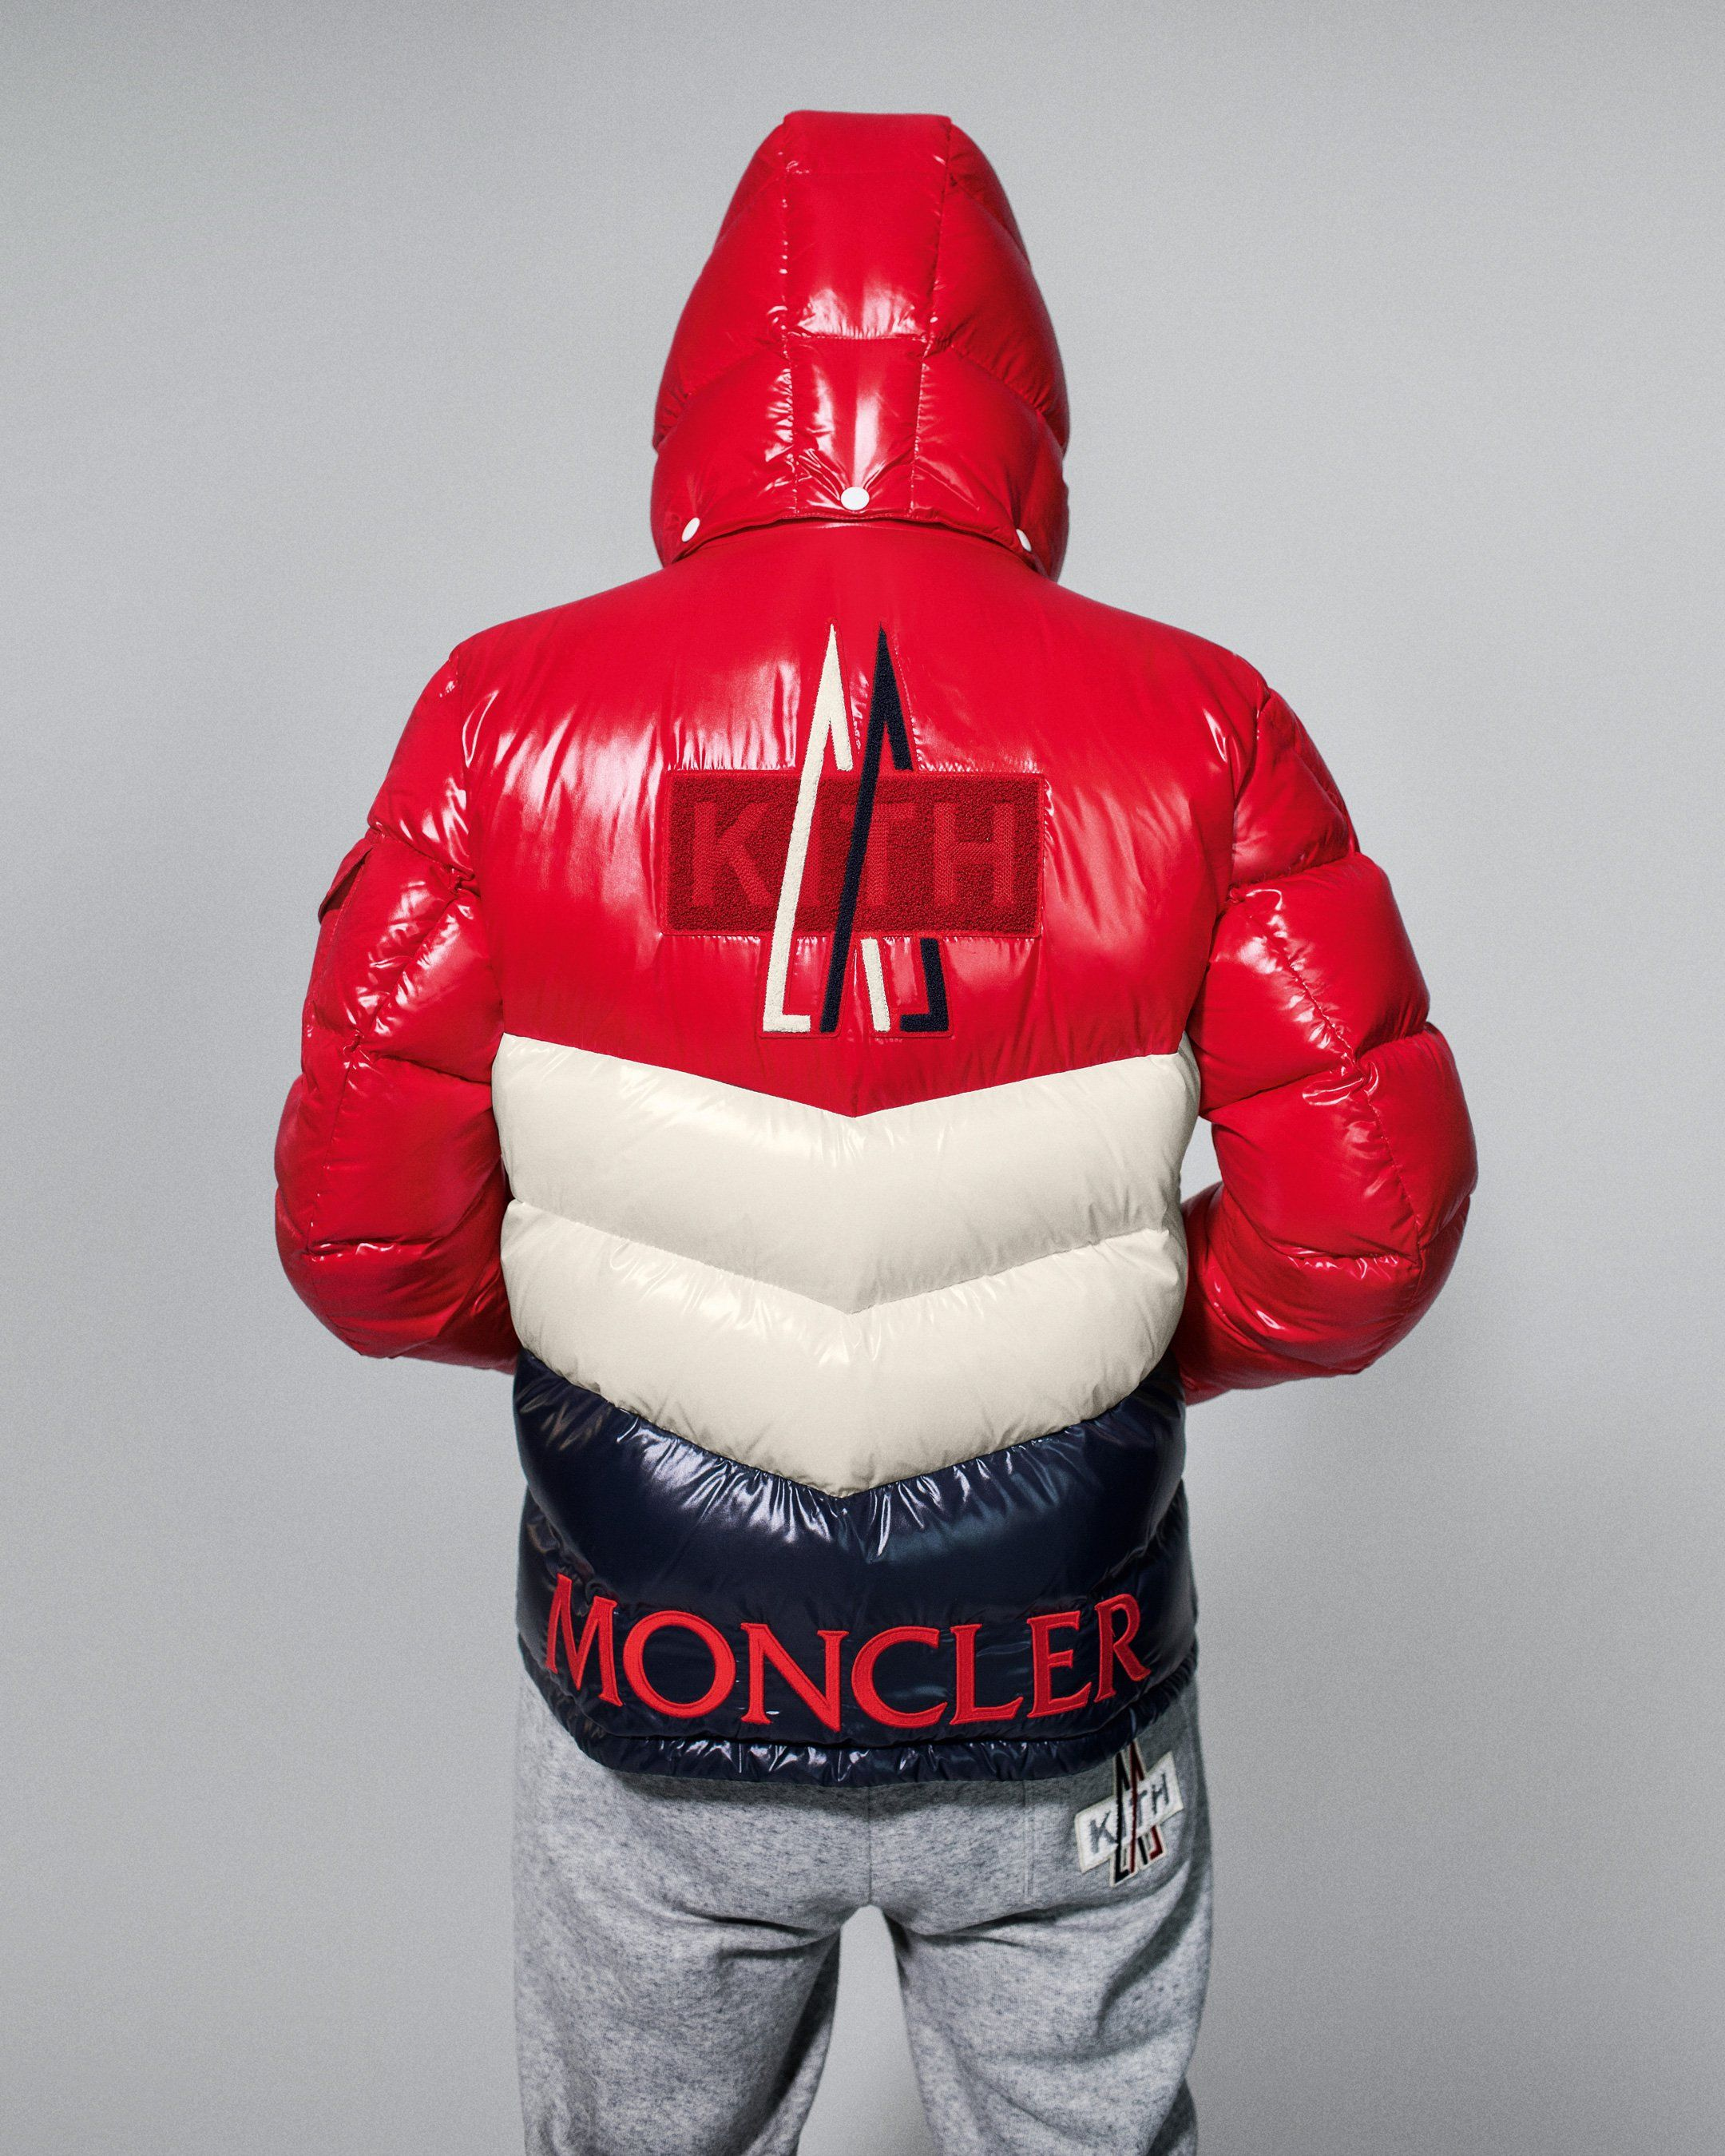 b2f1e51f5bc9 Kith partners with luxury outerwear brand Moncler on a full range of  apparel